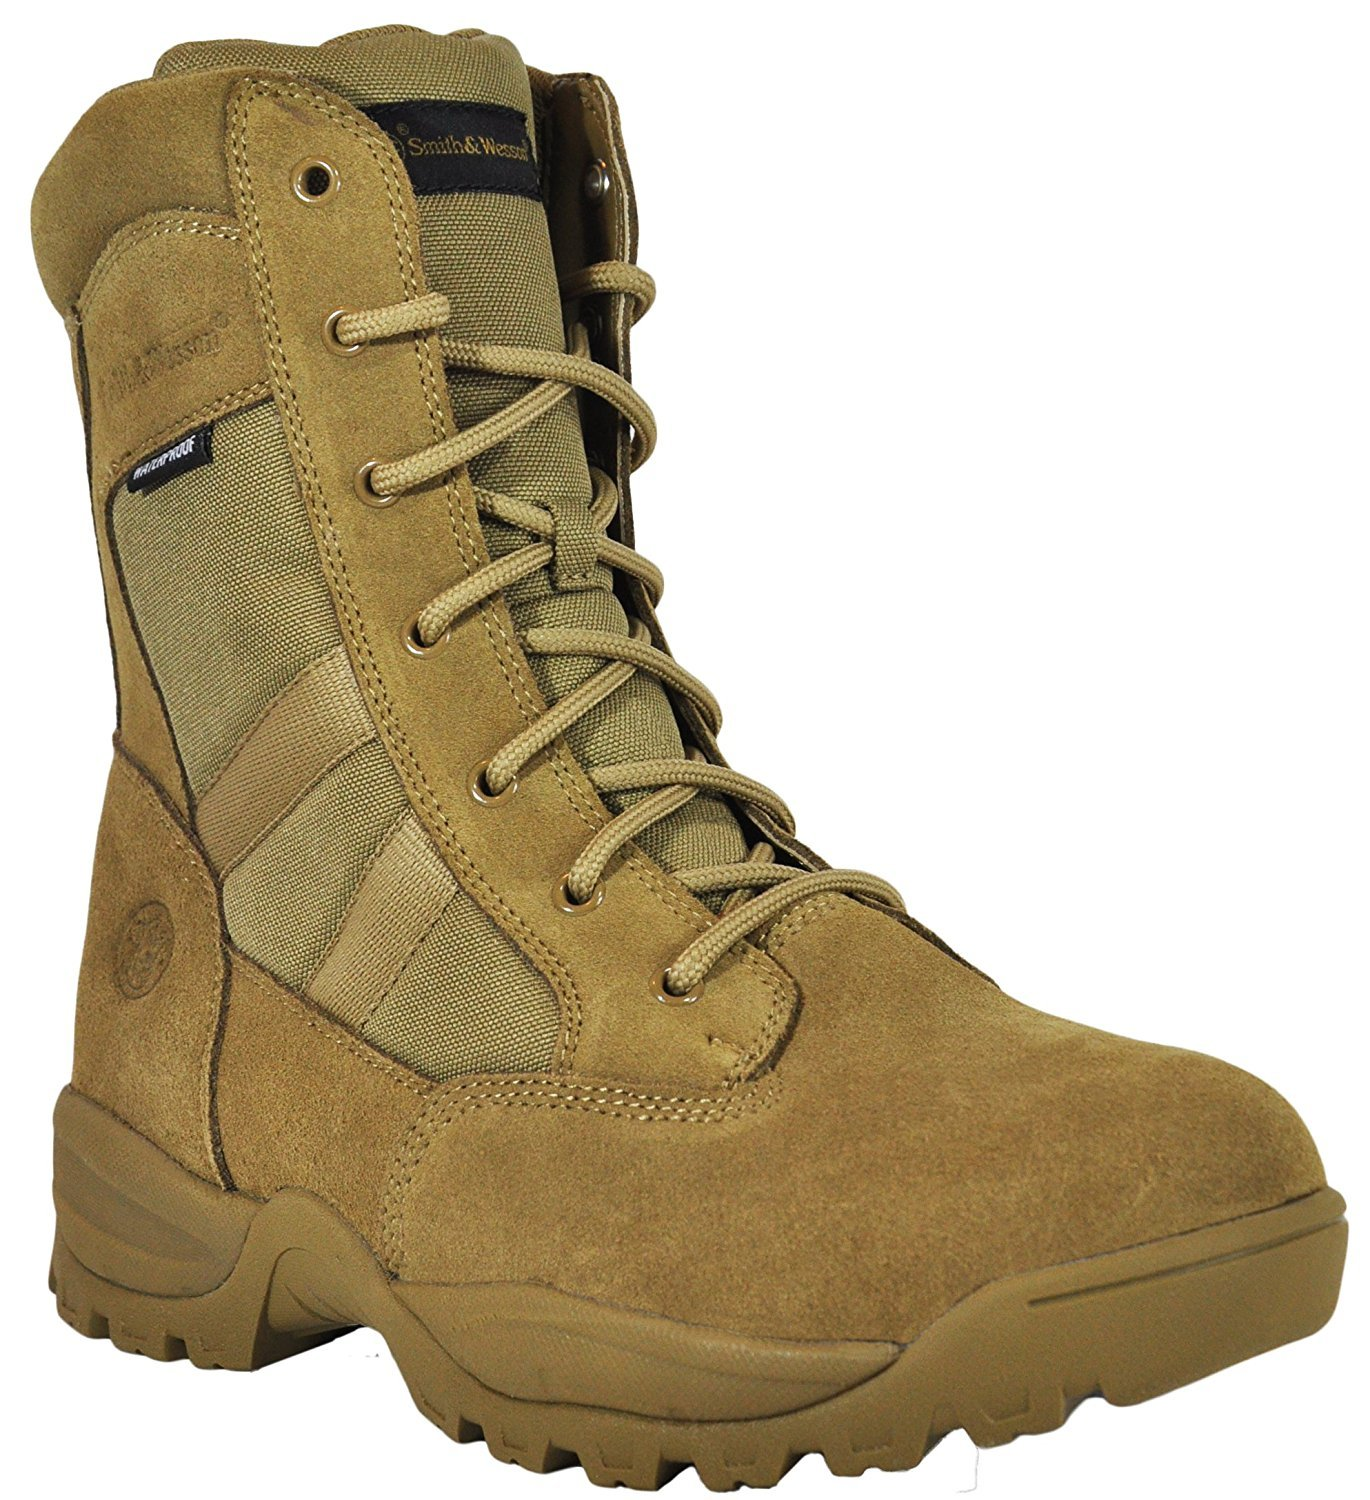 Smith & Wesson Footwear Men's Breach 2.0 Tactical Size Zip Boots, Coyote, 10